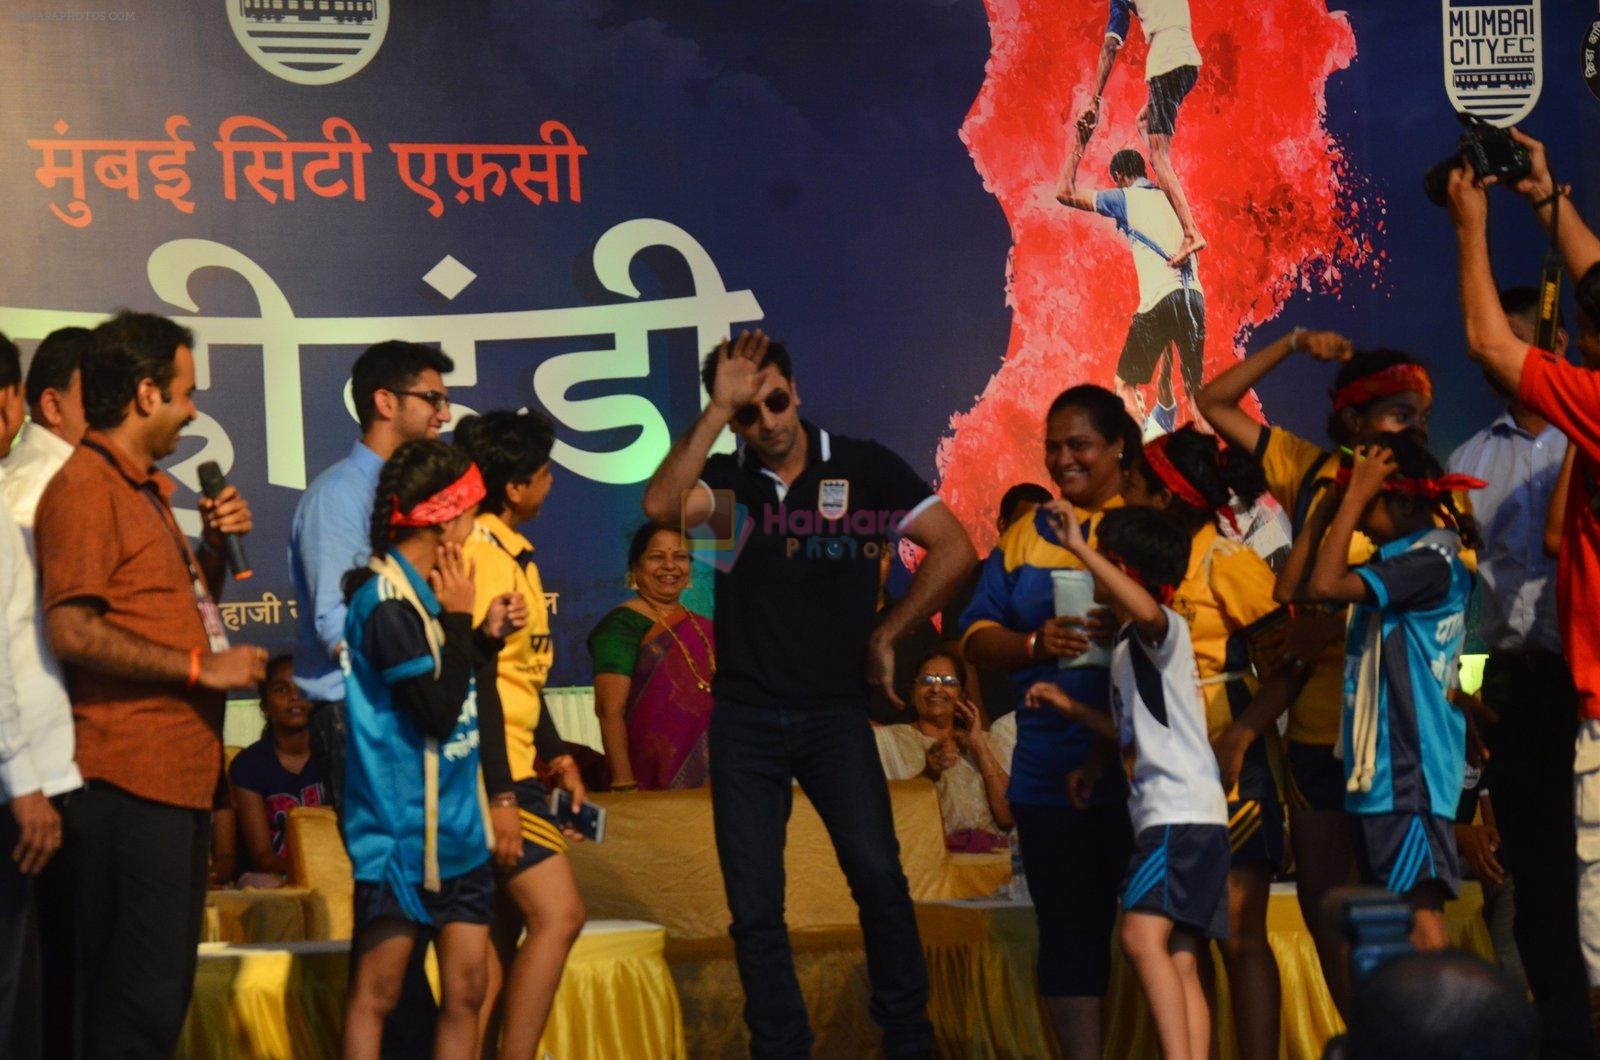 Ranbir Kapoor during the Mumbai City FC Dahi Handi Utsav at Shahaji Raje Bhosle Kreeda Sankul on 25th Aug 2016